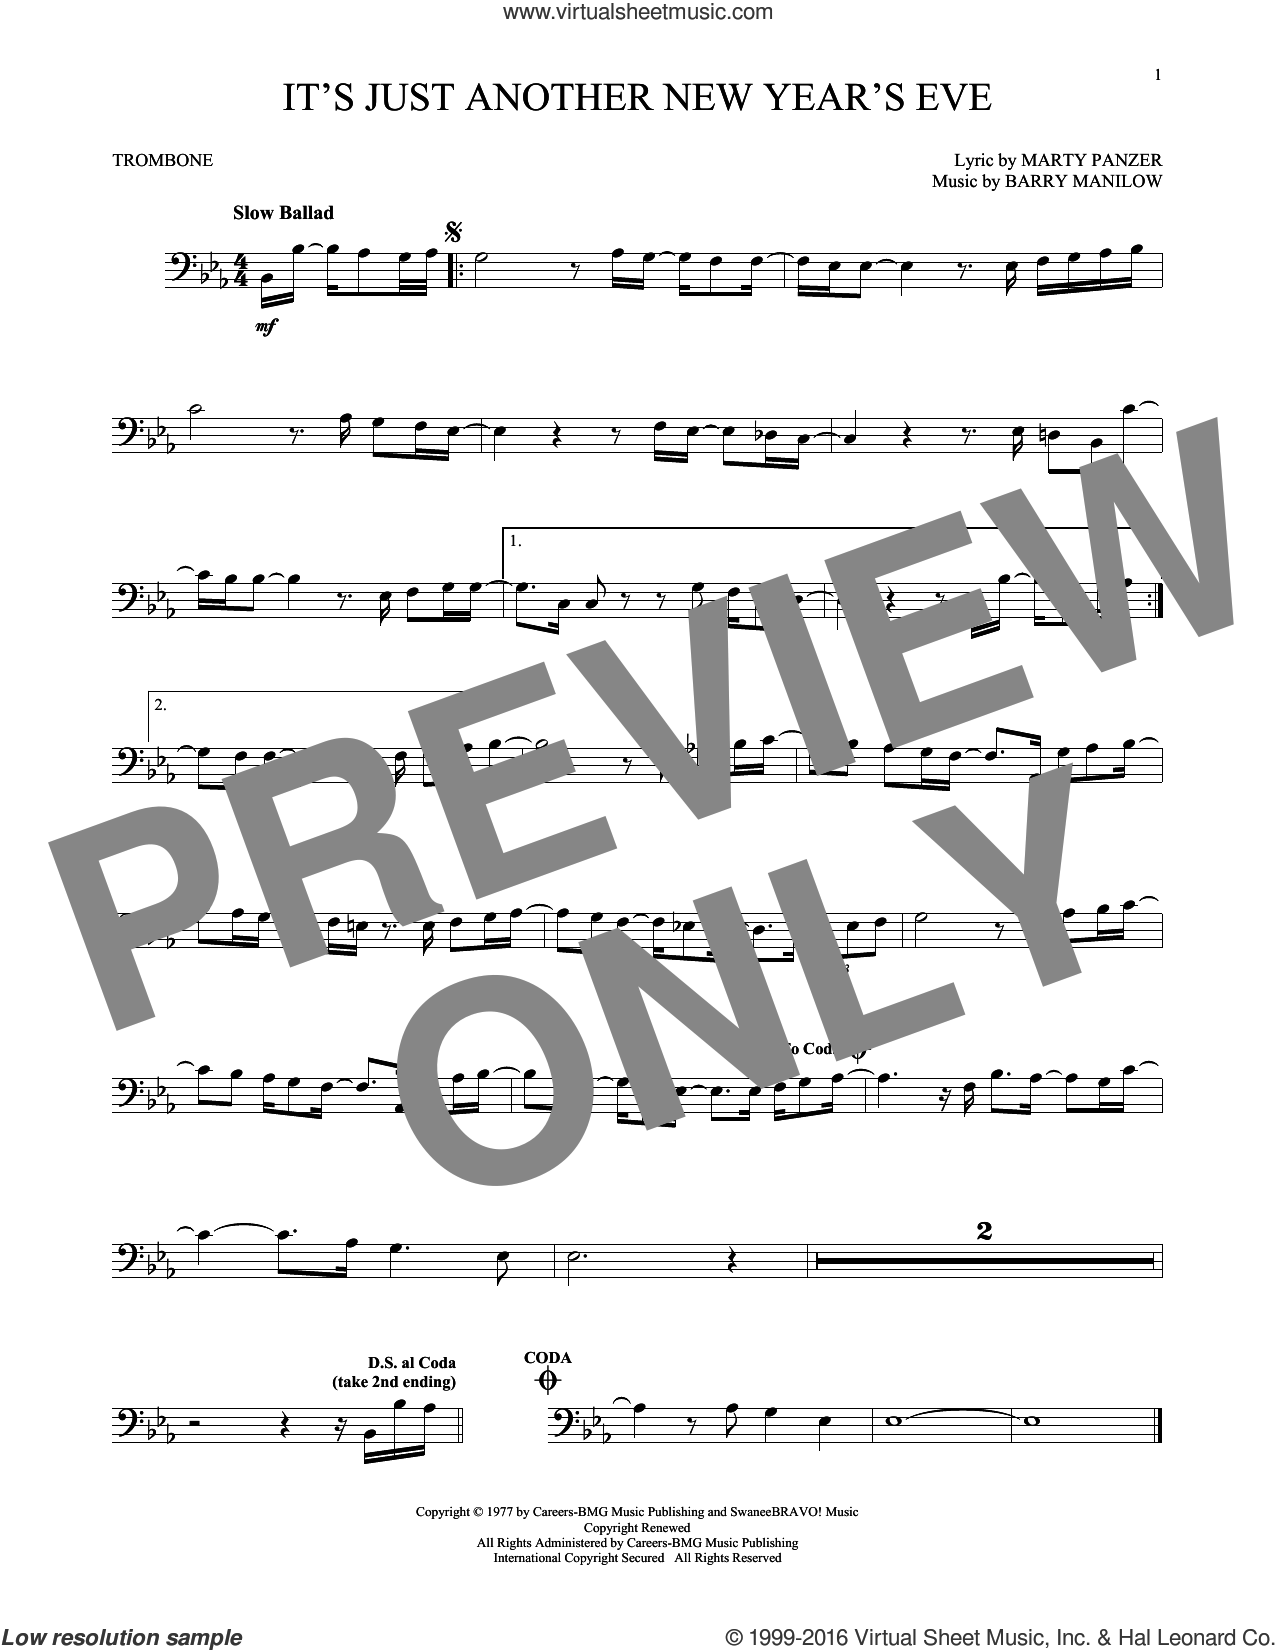 It's Just Another New Year's Eve sheet music for trombone solo by Barry Manilow and Marty Panzer, intermediate skill level